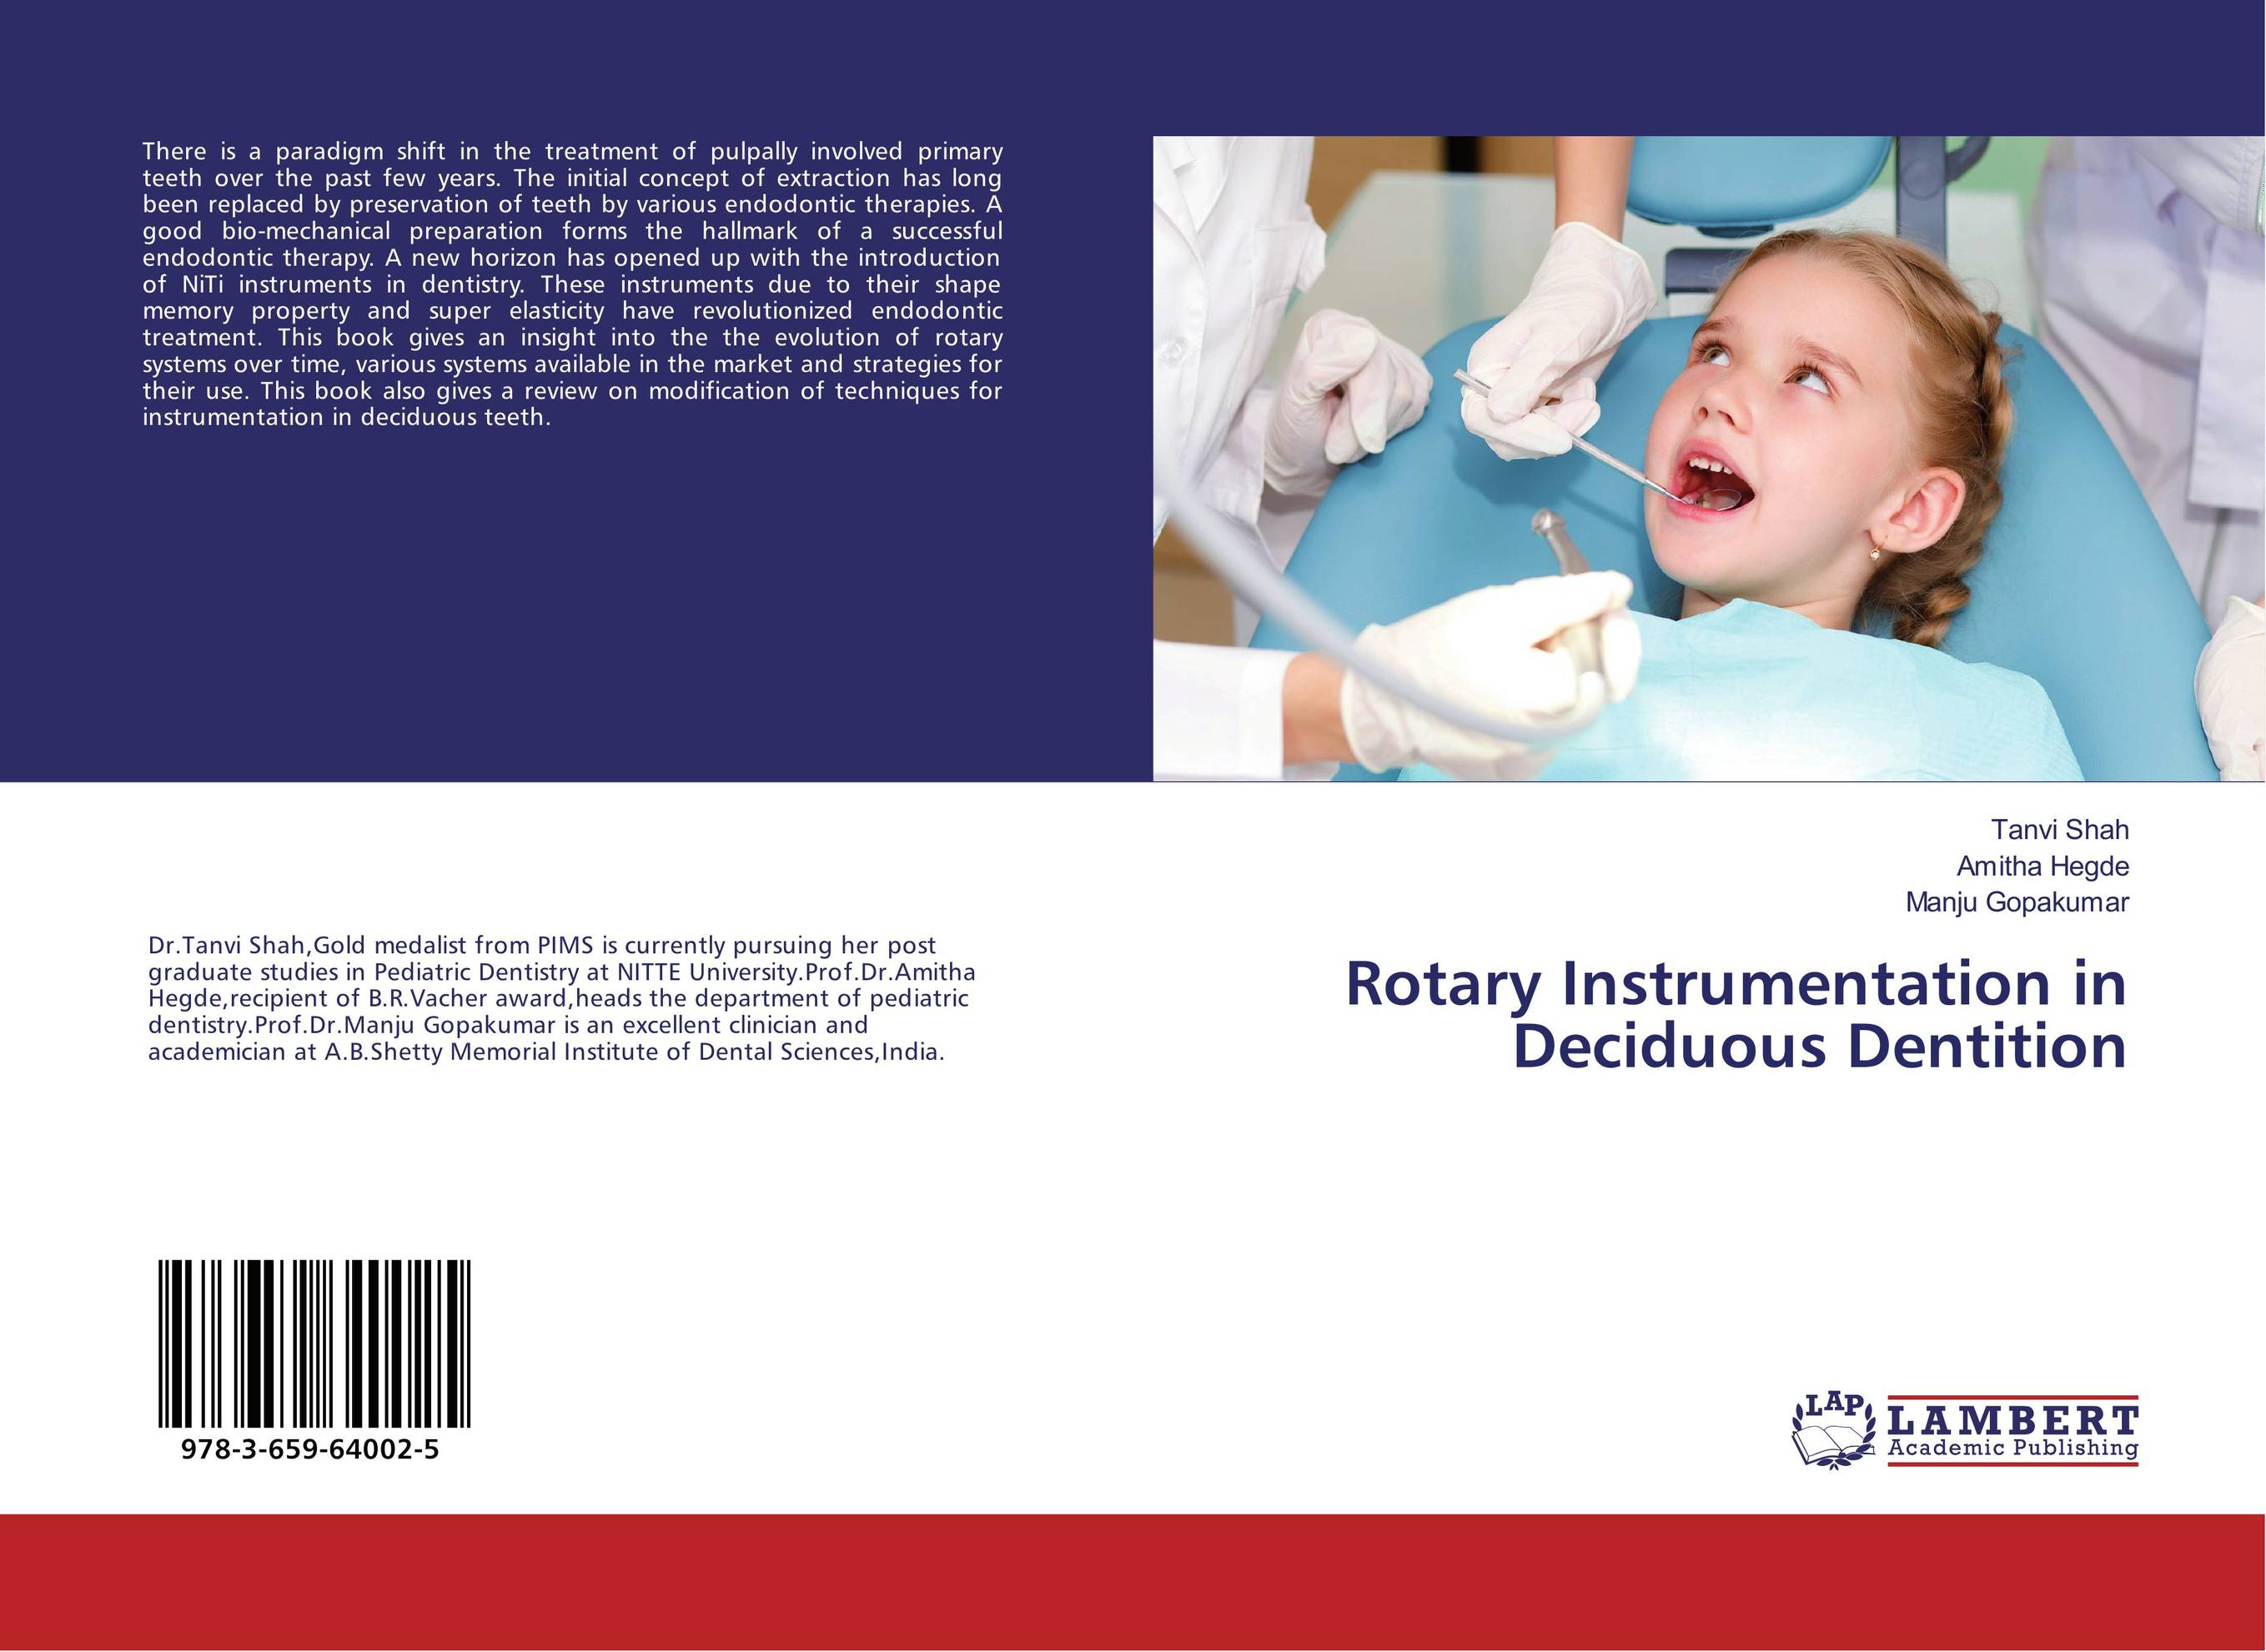 Rotary Instrumentation in Deciduous Dentition karanprakash singh ramanpreet kaur bhullar and sumit kochhar forensic dentistry teeth and their secrets